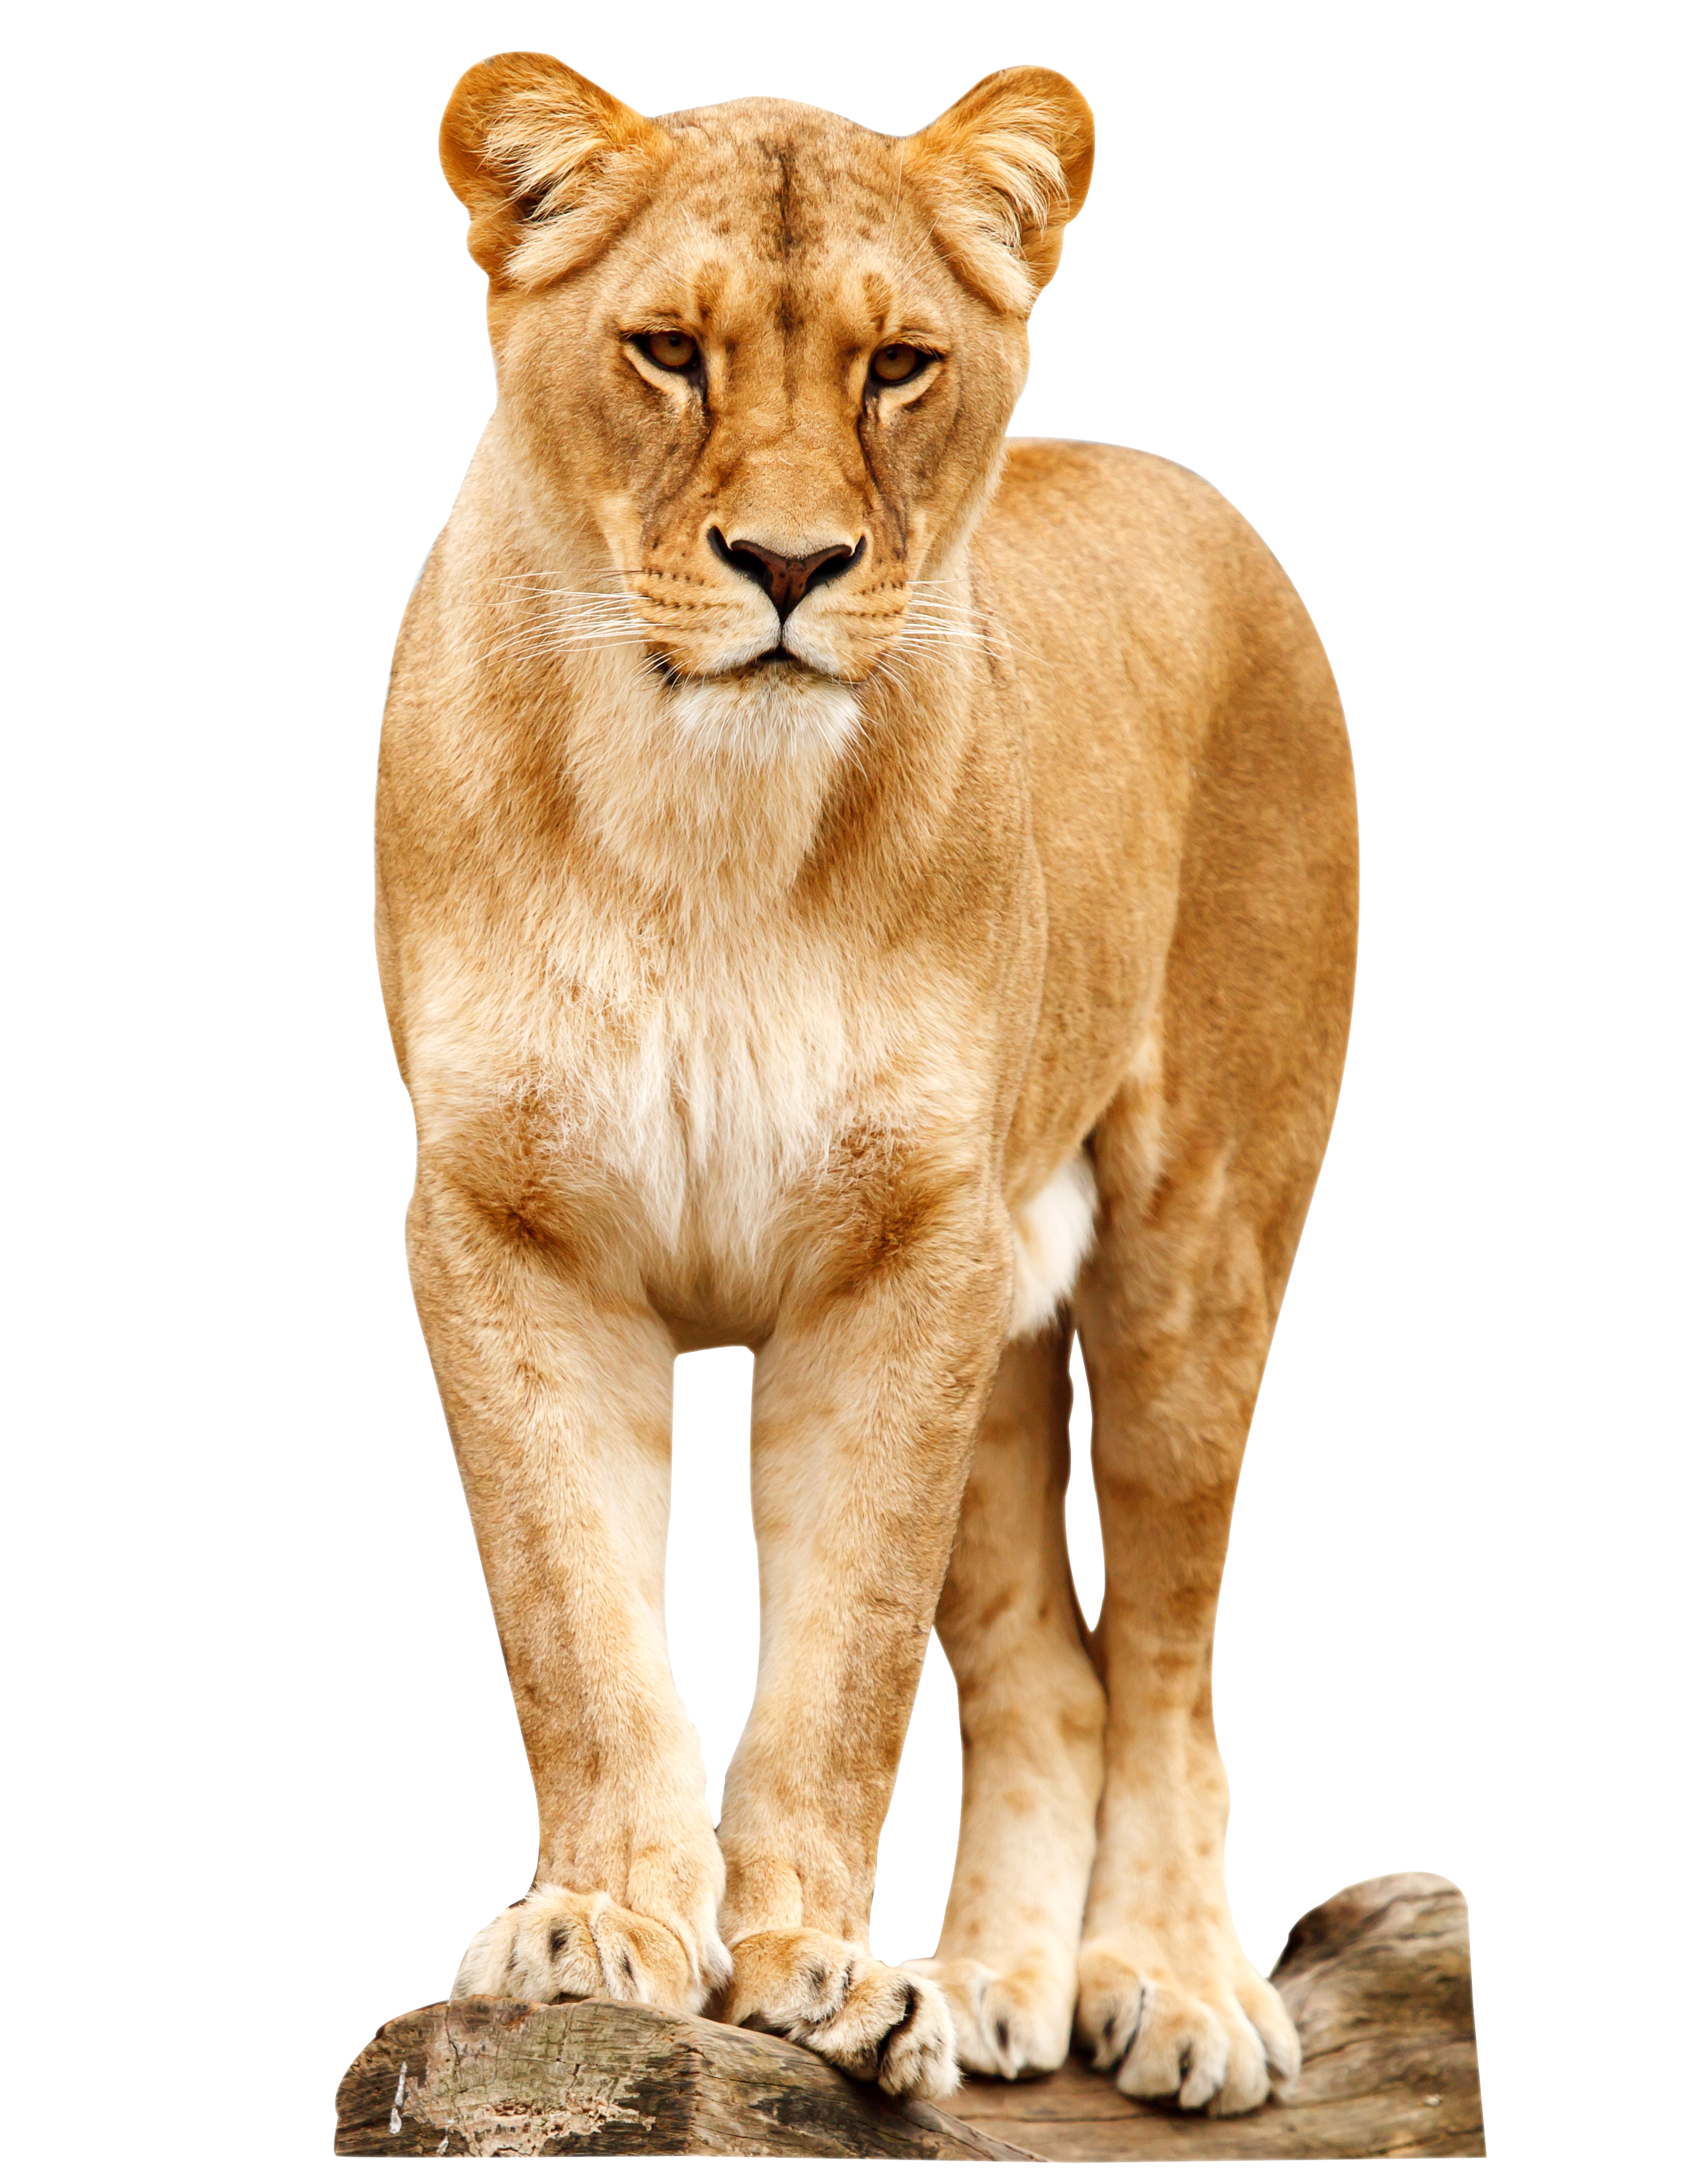 Png animals hd. Lion images free download